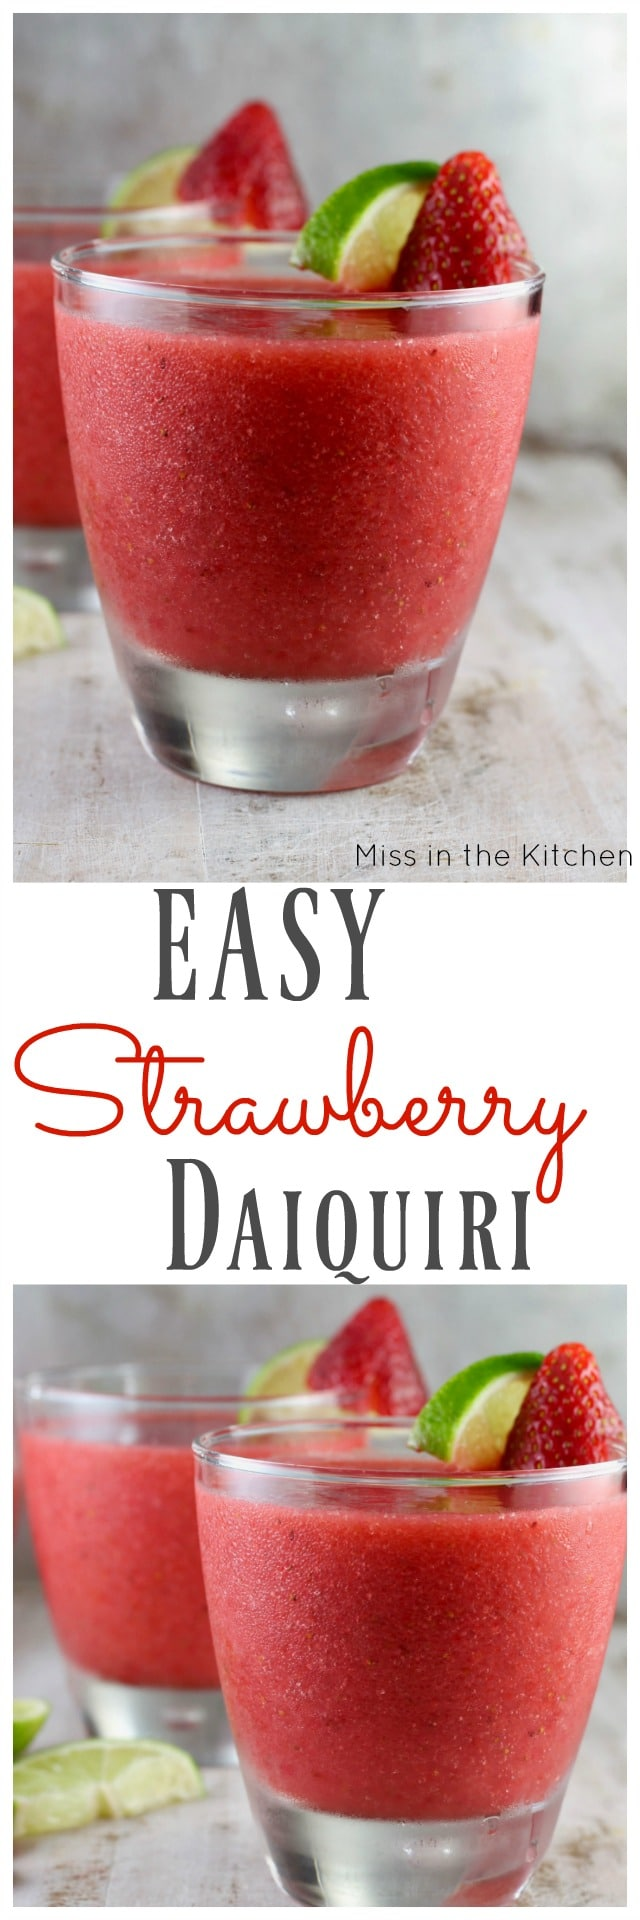 Easy Strawberry Daiquiri Cocktail ~ Perfect weekend cocktail recipe found at MissintheKitchen.com